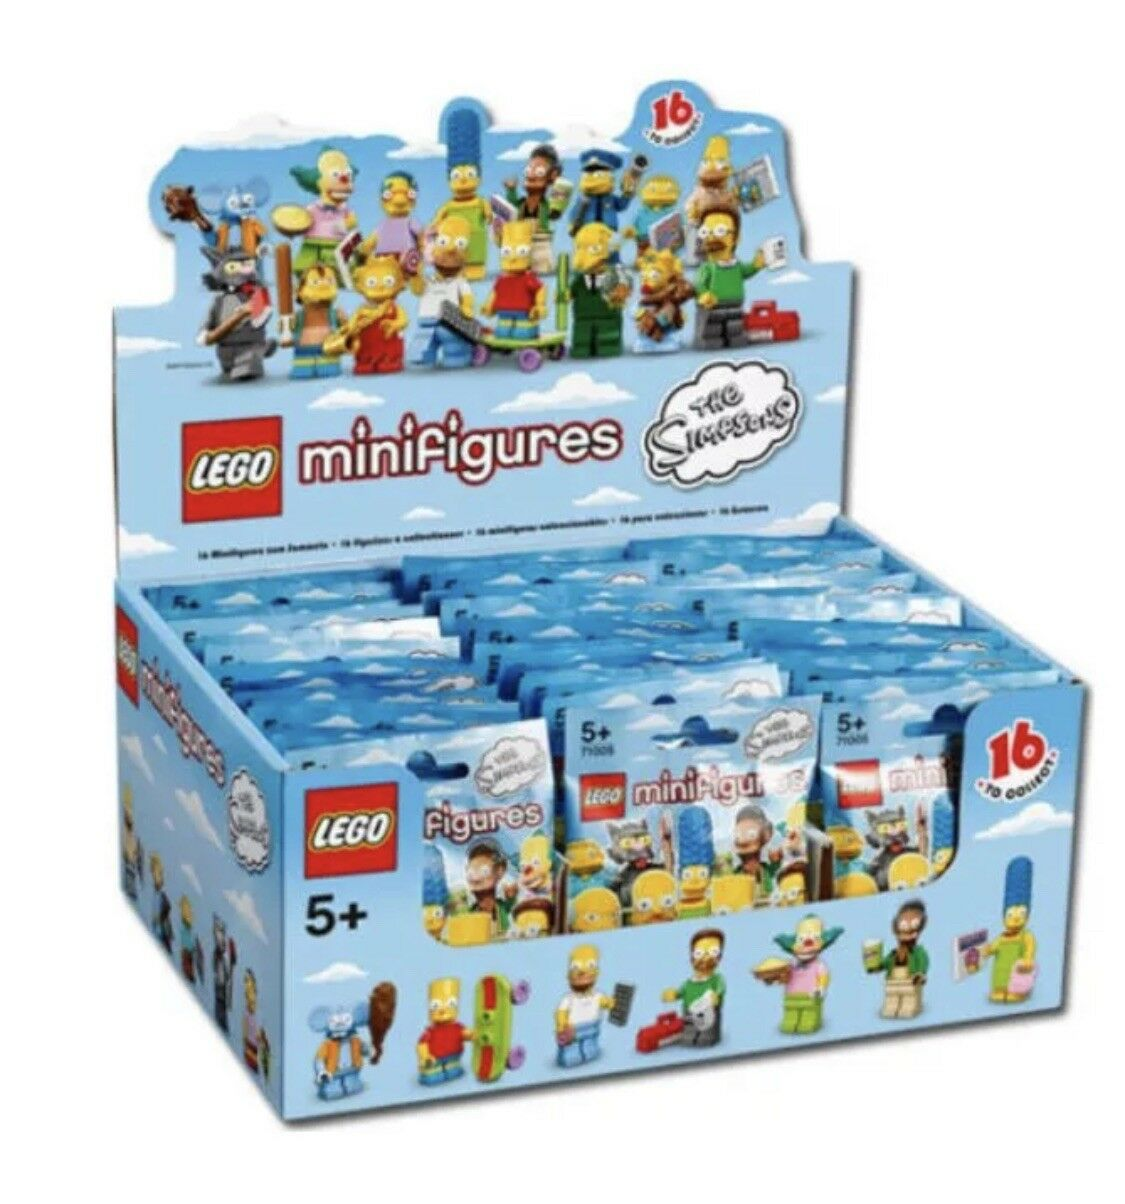 NEW SEALED LEGO Box/Case 71005 of 60 MINIFIGURES SERIES 1 THE SIMPSONS